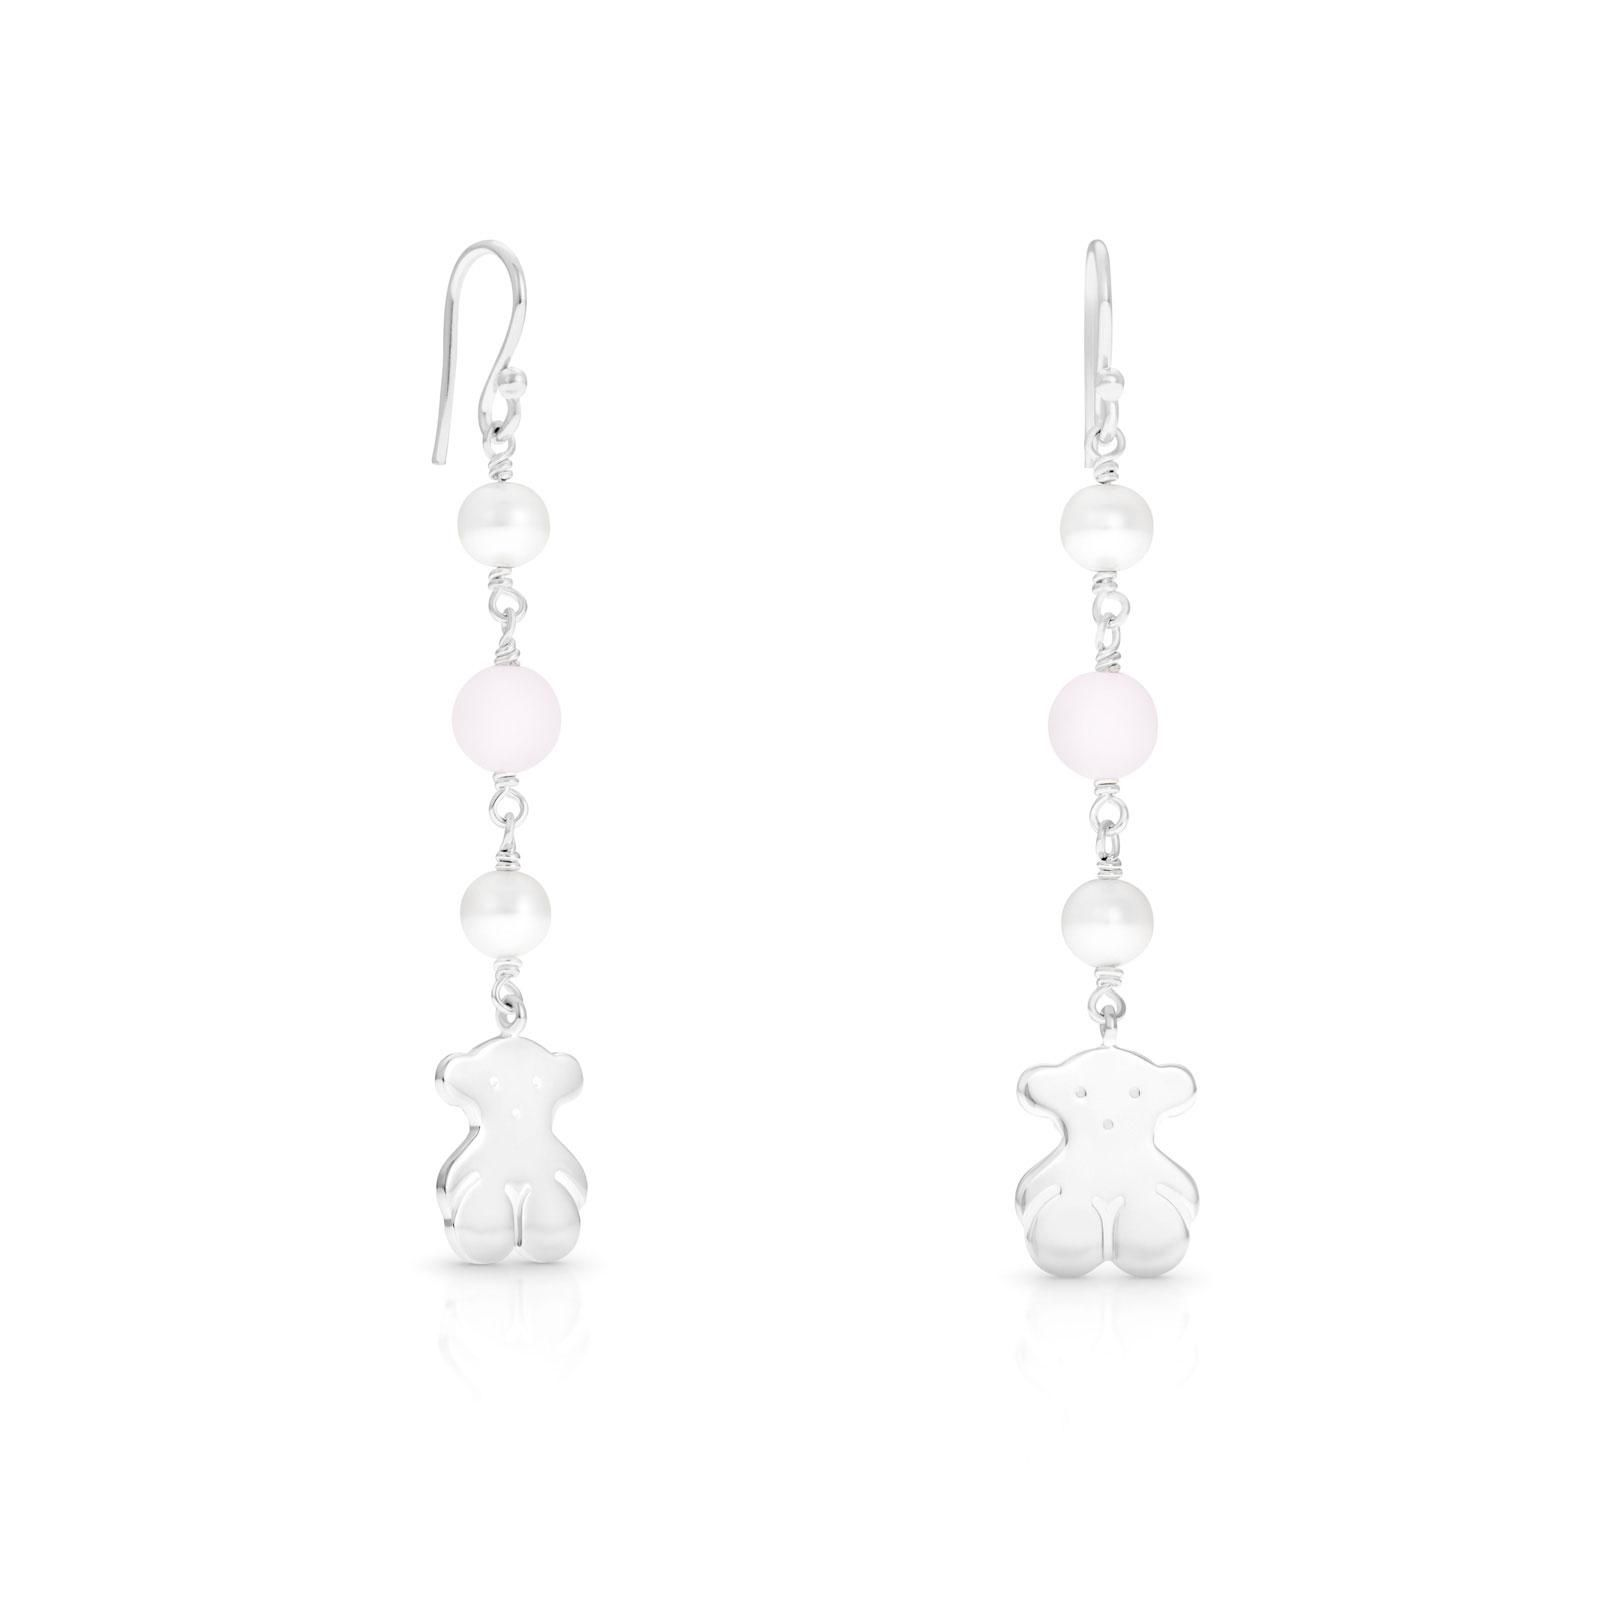 """Sterling silver TOUS Jouet earrings with 6mm. - 1/4"""" cultured pearls and 7mm. - 1/4"""" pink quartz. Bear: 1,5cm. - 7/8"""". Hook lock.  TOUS Washington DC"""